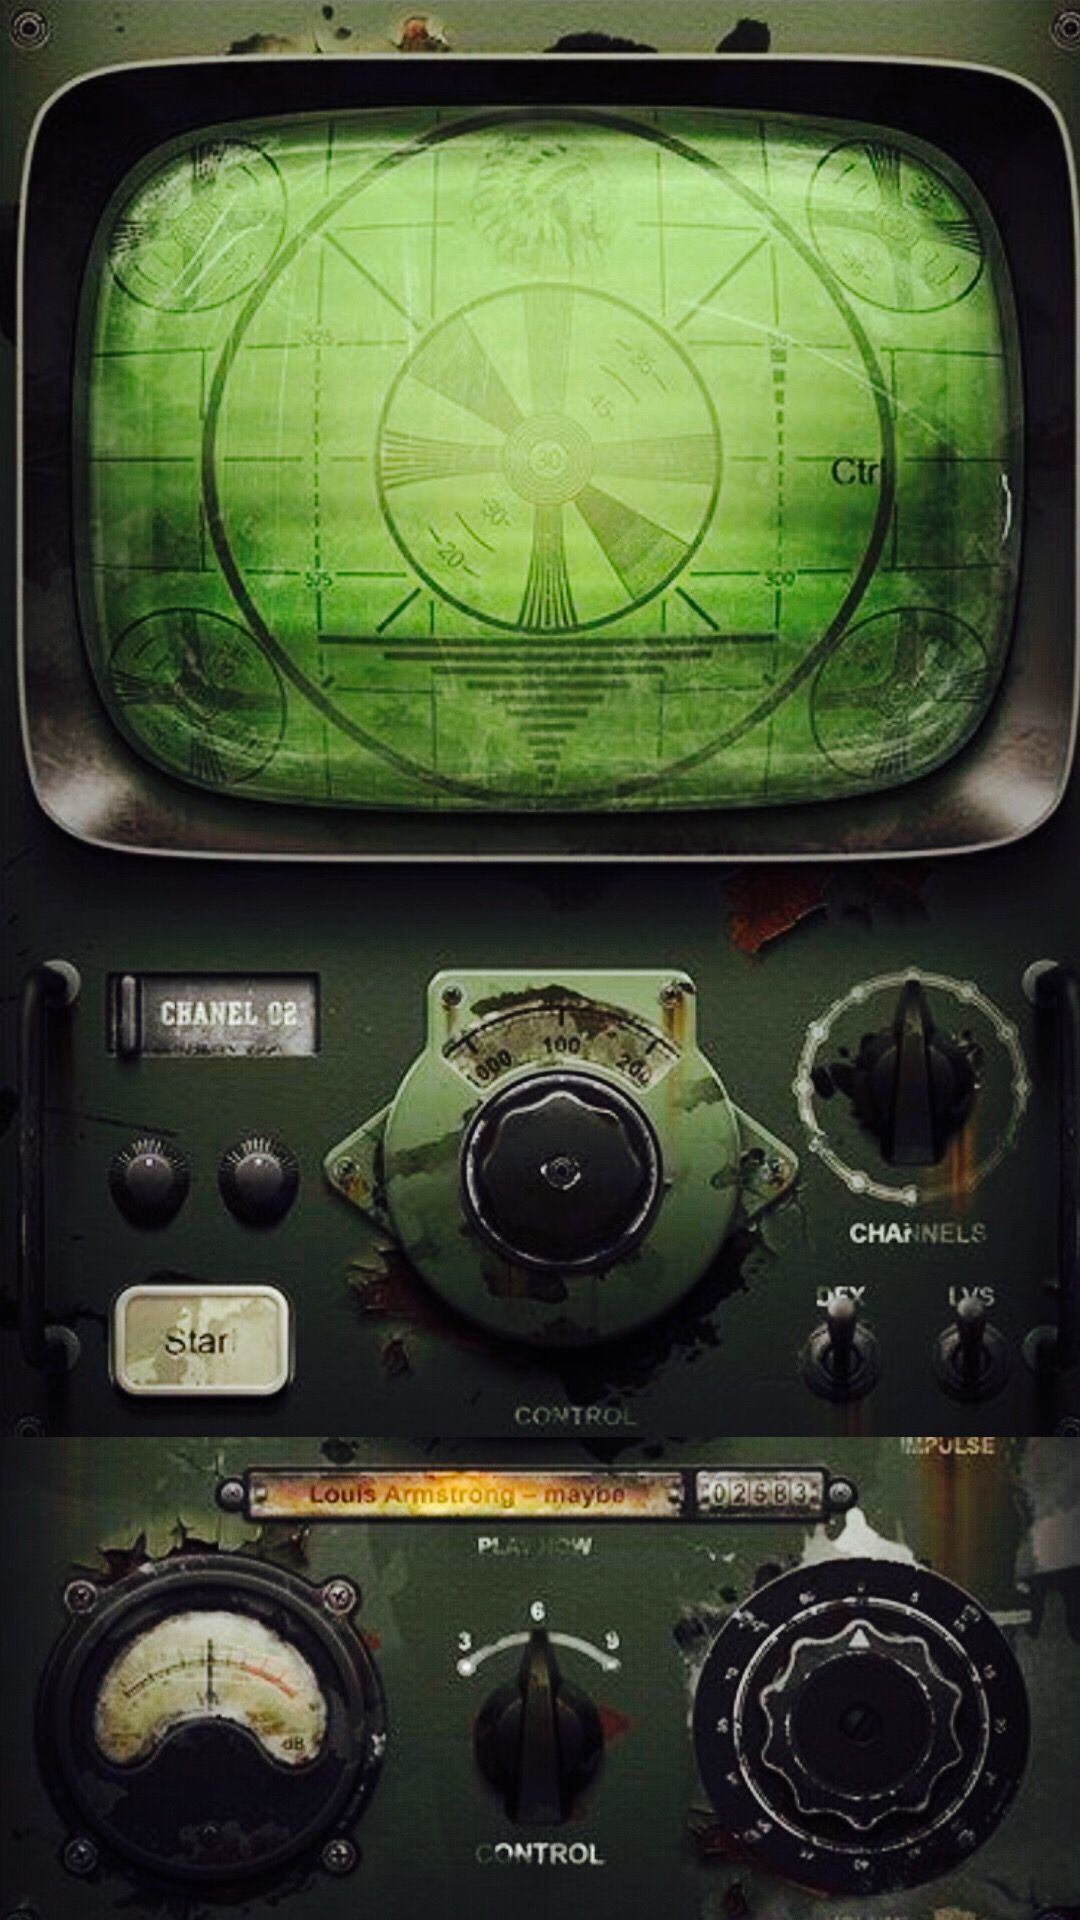 Pin By John Mccloskey On Phone Wallpapers Iphone Wallpaper Iphone Lockscreen Wallpaper Fallout Wallpaper